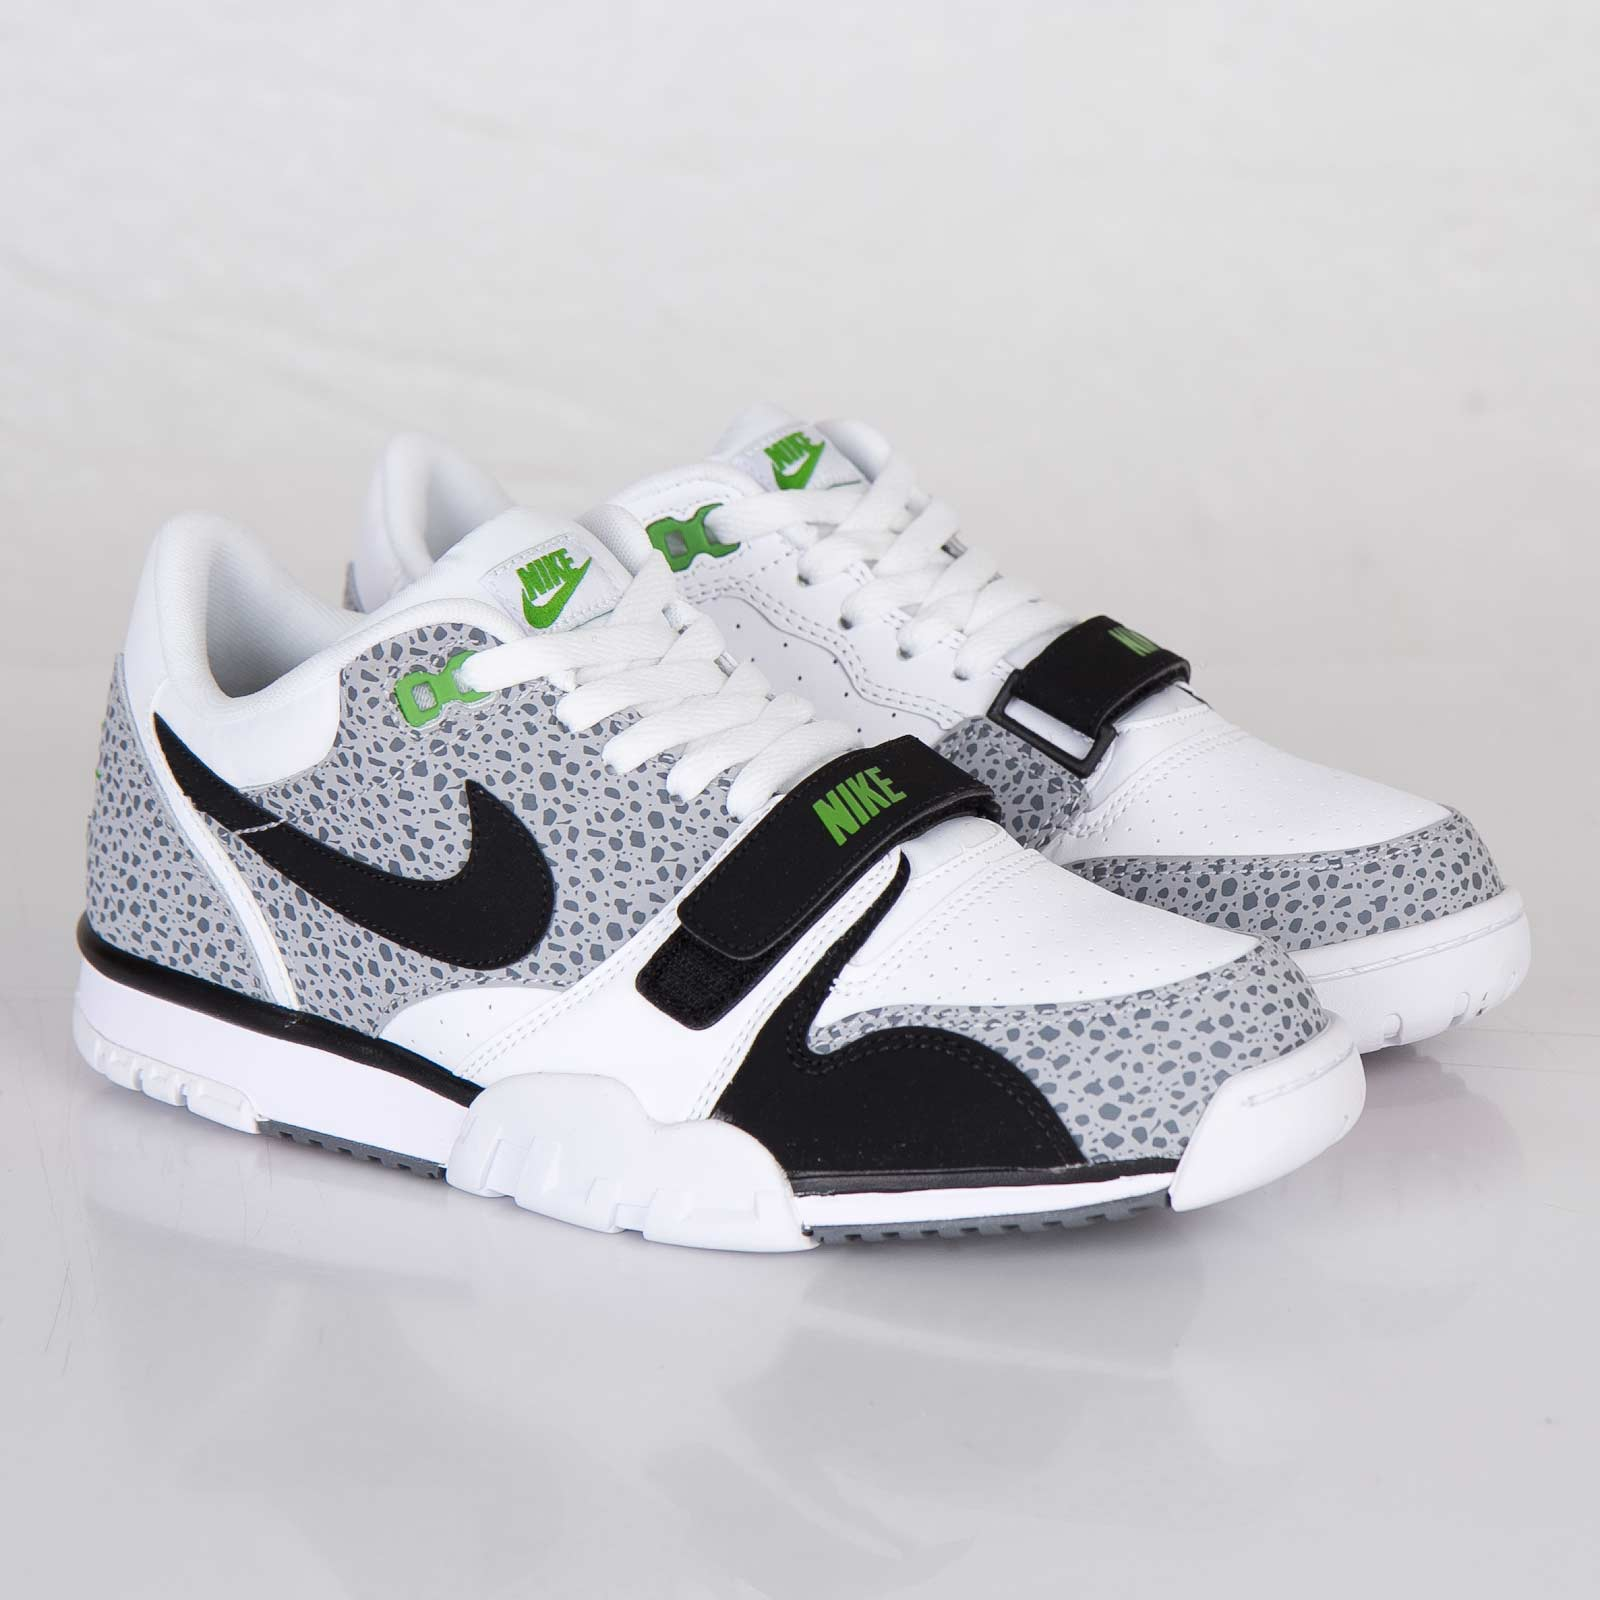 Nike Air Trainer 1 Low St - 637995-100